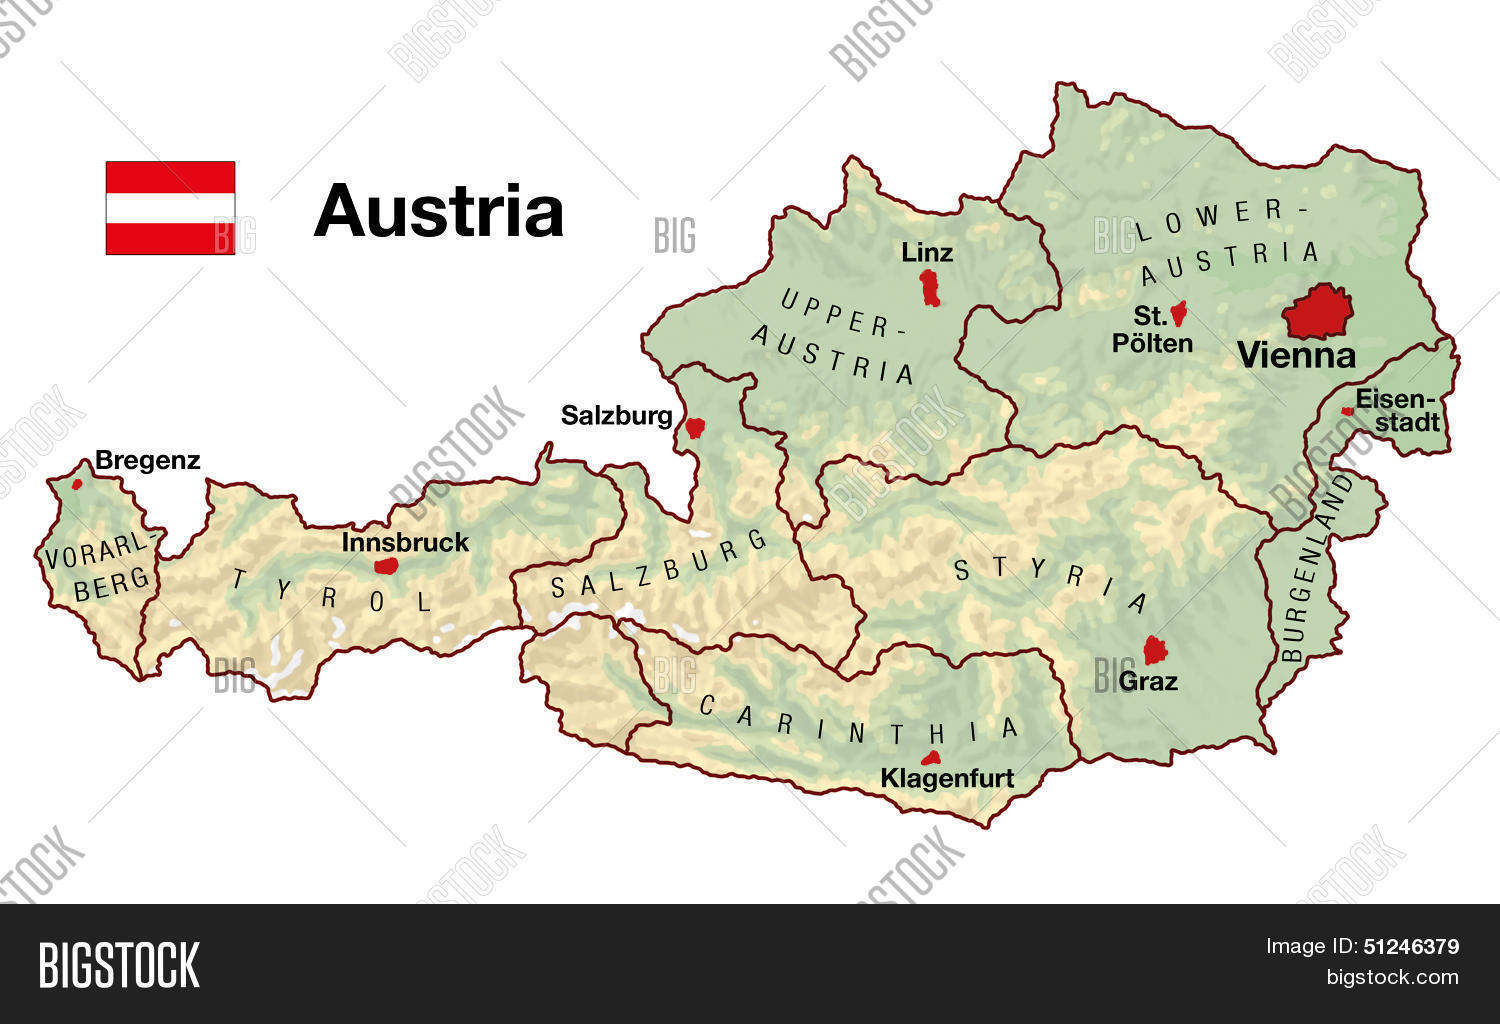 Austria Map Image & Photo (Free Trial)   Bigstock on pinkafeld austria map, munich germany map, germany and austria map, wiener neustadt austria map, munich austria map, austria world map, vienna map, italy germany austria map, zell am see austria map, stubai austria map, austria province map, encarnacion paraguay on a map, alps map, mariazell austria map, eisenstadt austria map, zurich austria map, mittenwald map, strasbourg austria map, salzburg austria map, hallstatt austria map,